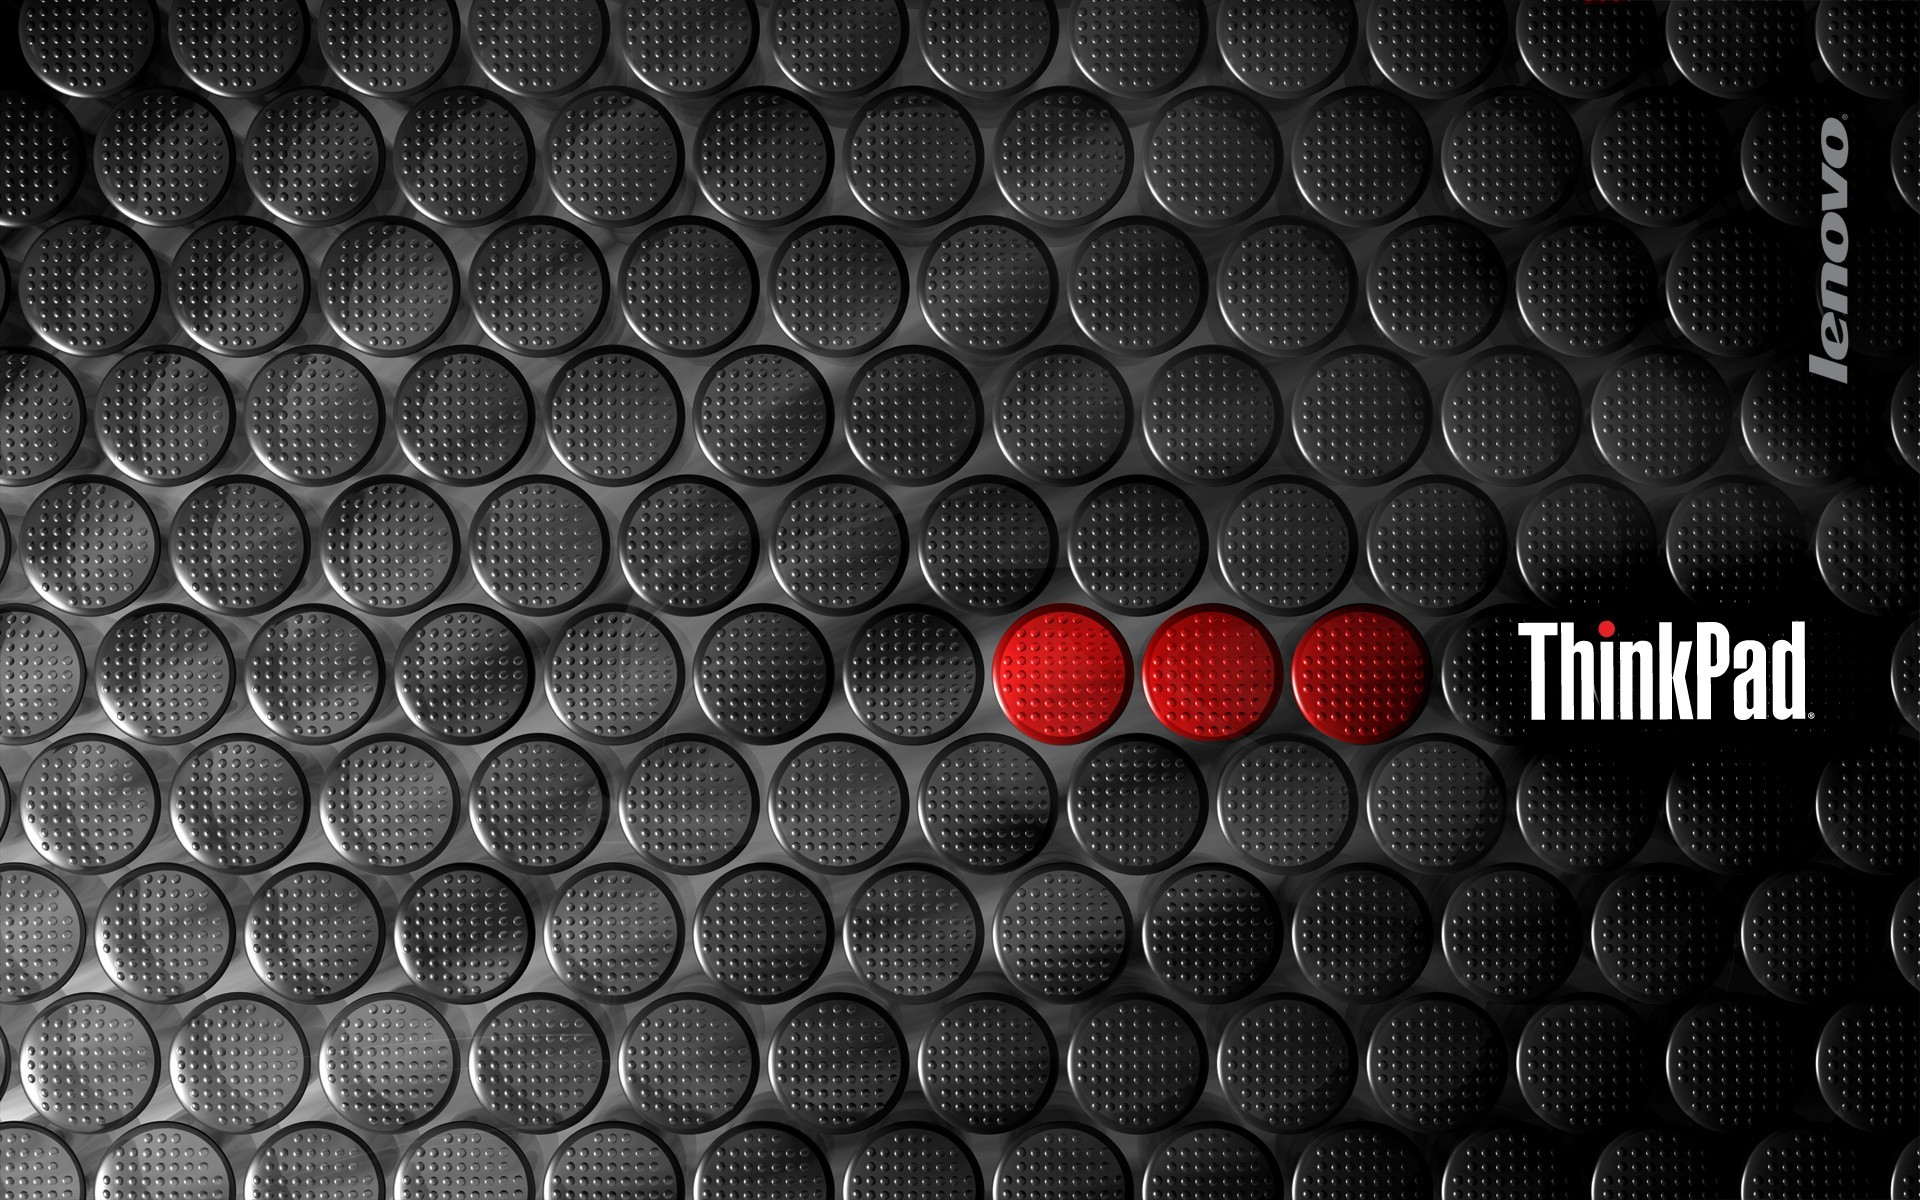 Thinkpad Wallpaper Hd 75 Images